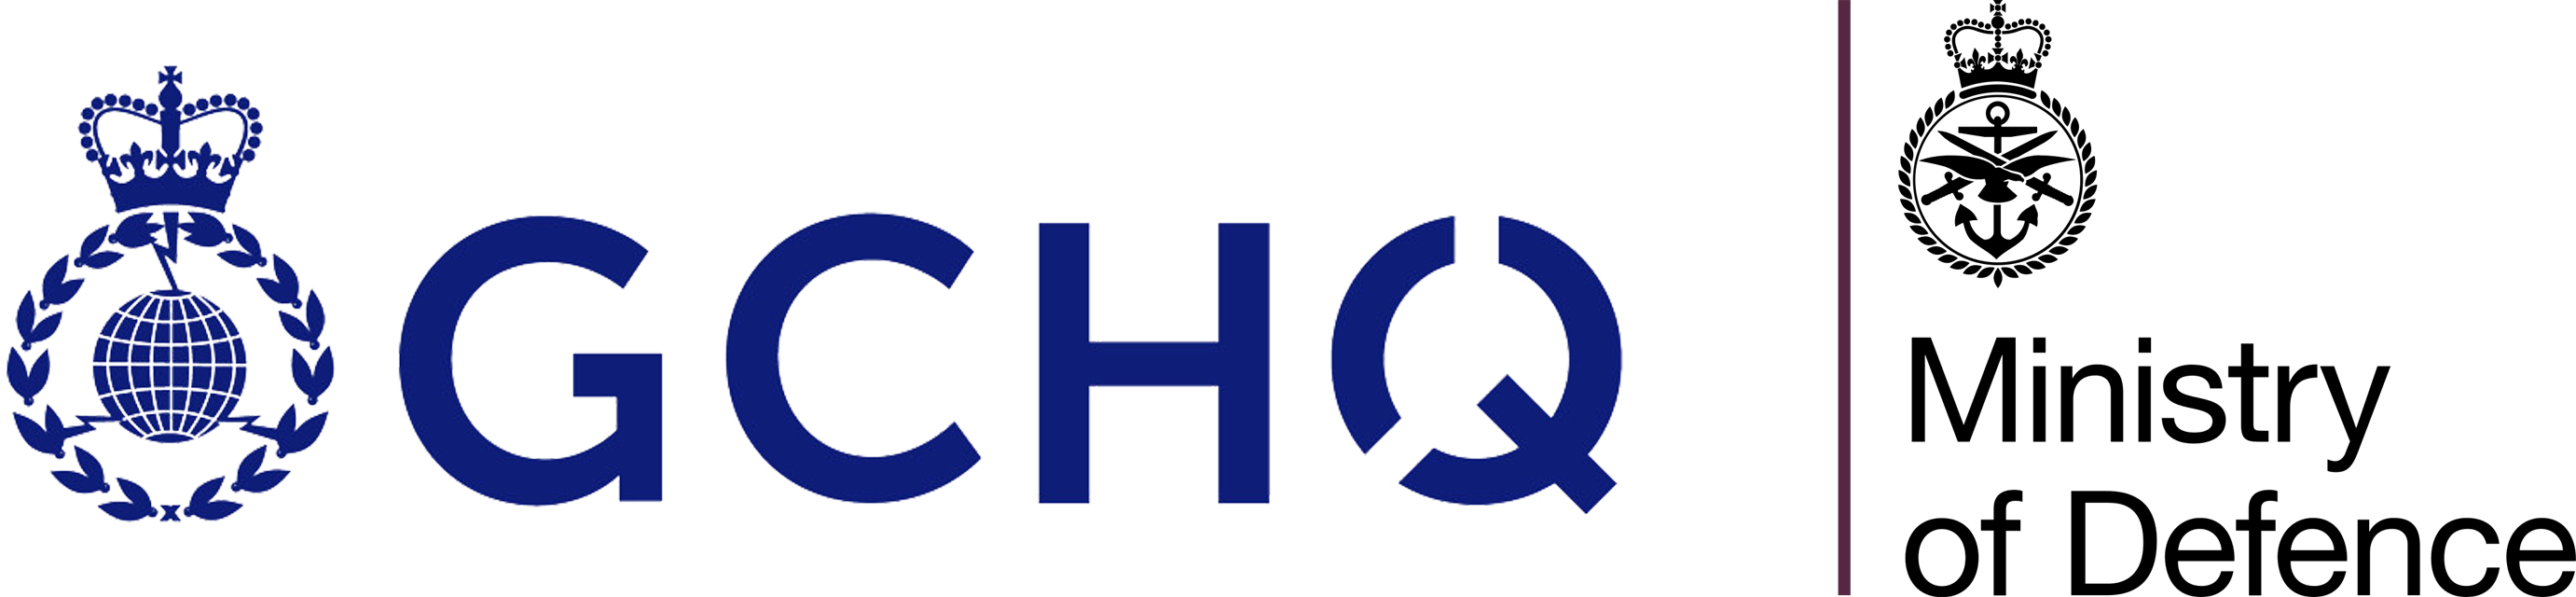 Logos of GCHQ and MoD